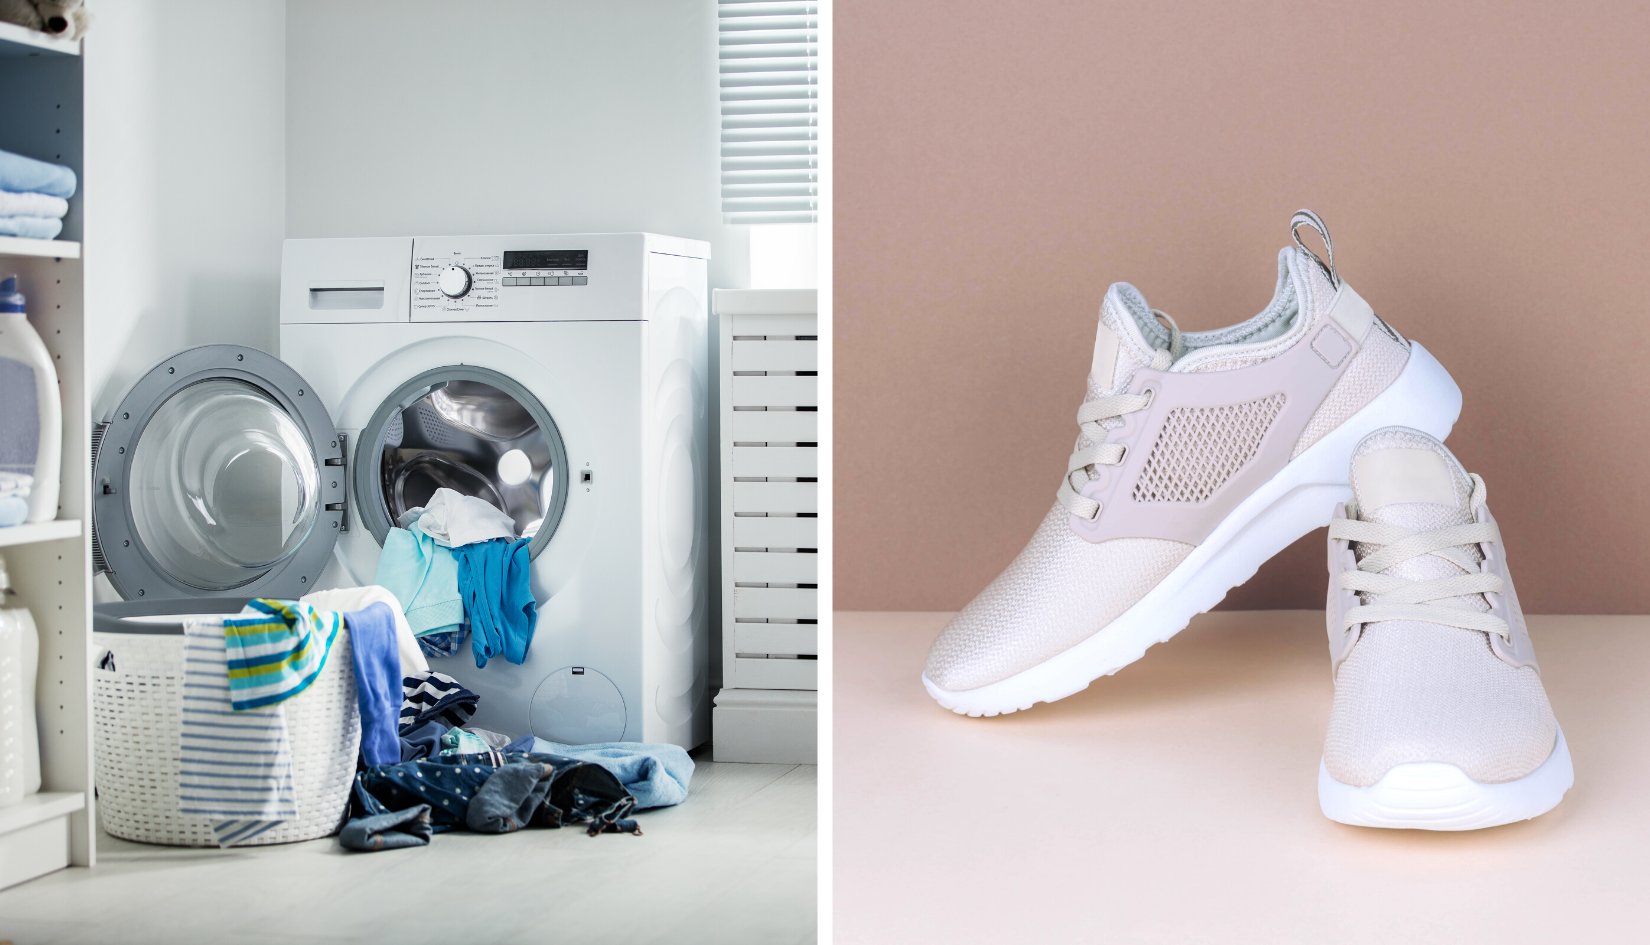 10 Unexpected Things You Can Put In A Washing Machine